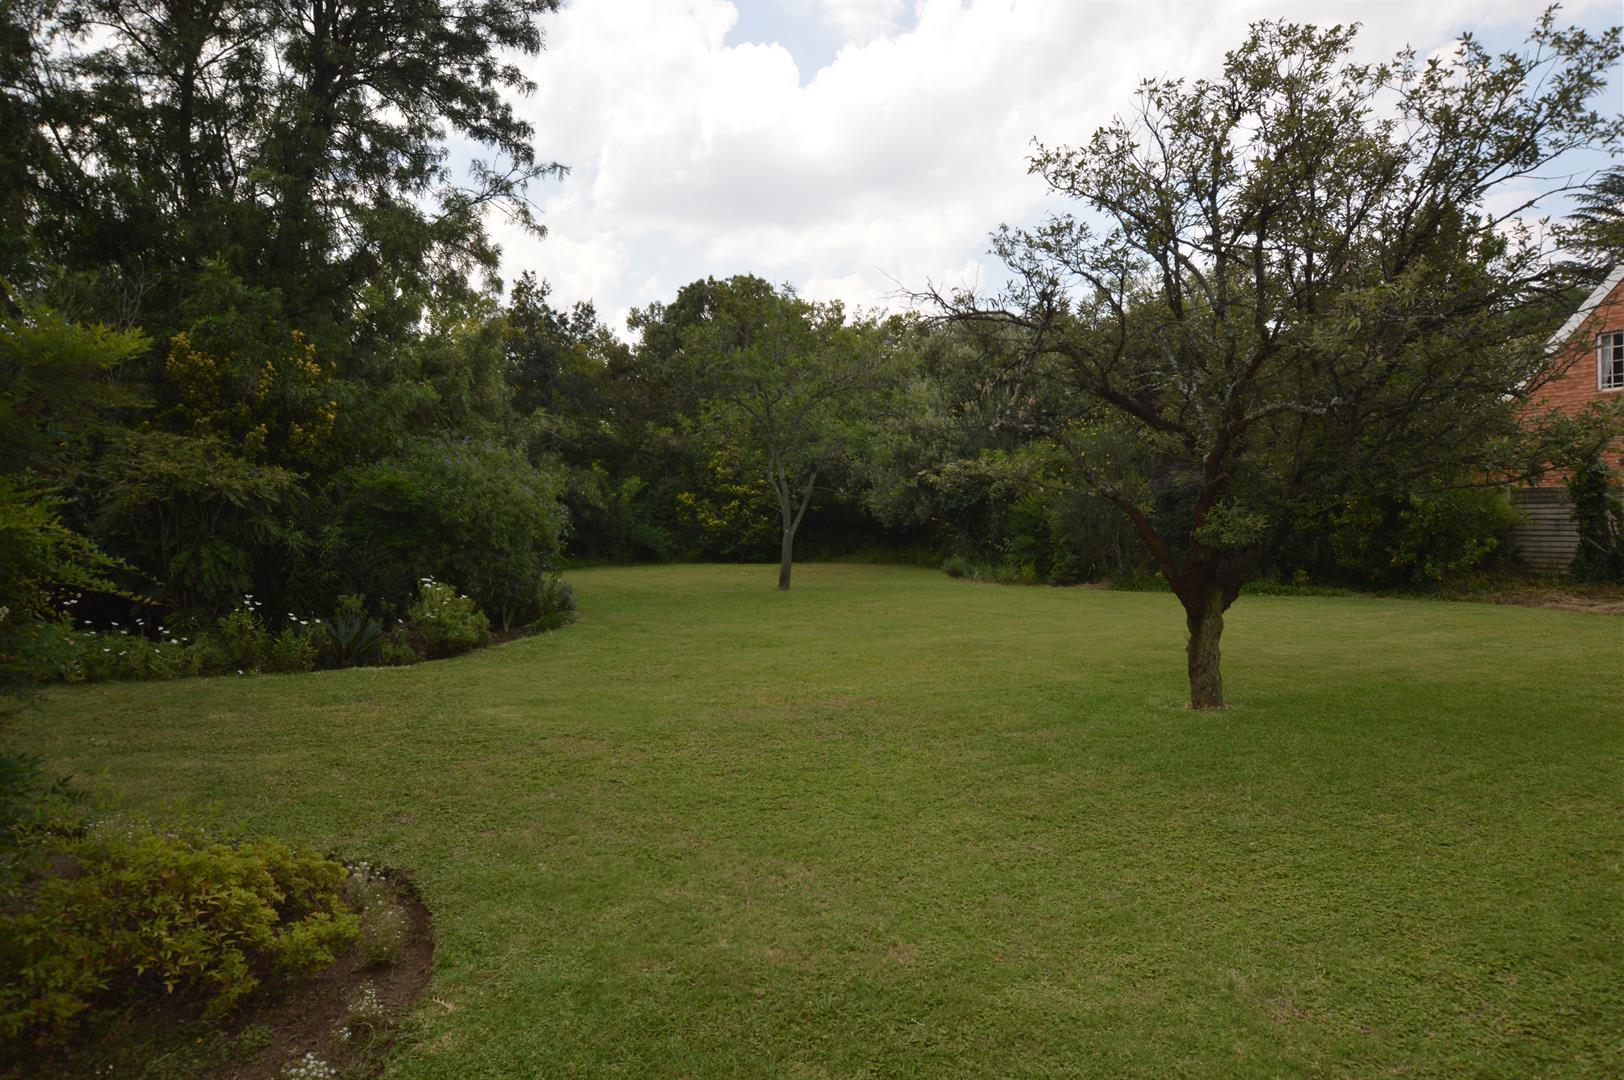 Vanderbijlpark Sw 5 property for sale. Ref No: 13443705. Picture no 27